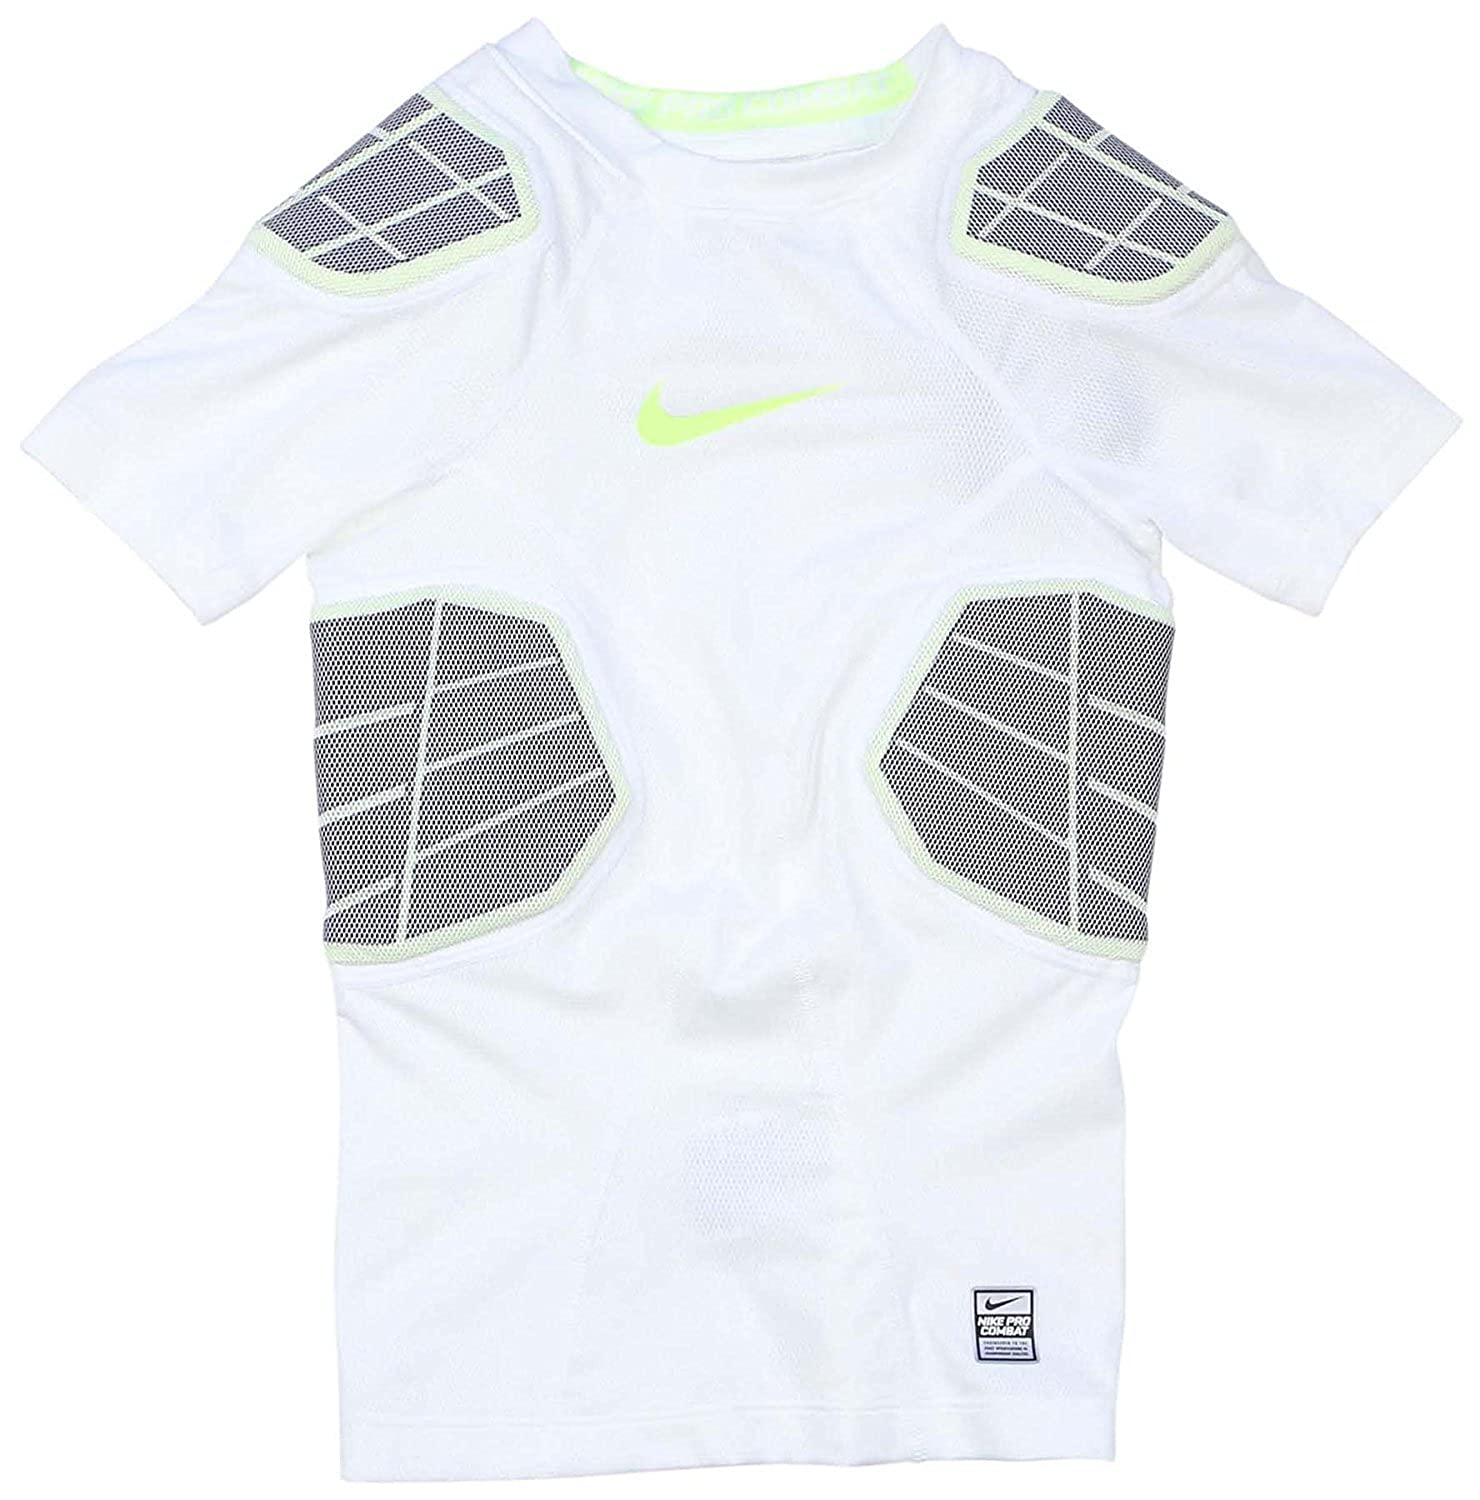 56b0c9f112be9 Amazon.com: Nike Boys Pro Combat Hyperstrong Padded Football Shirt White  584397 100 (m): Clothing